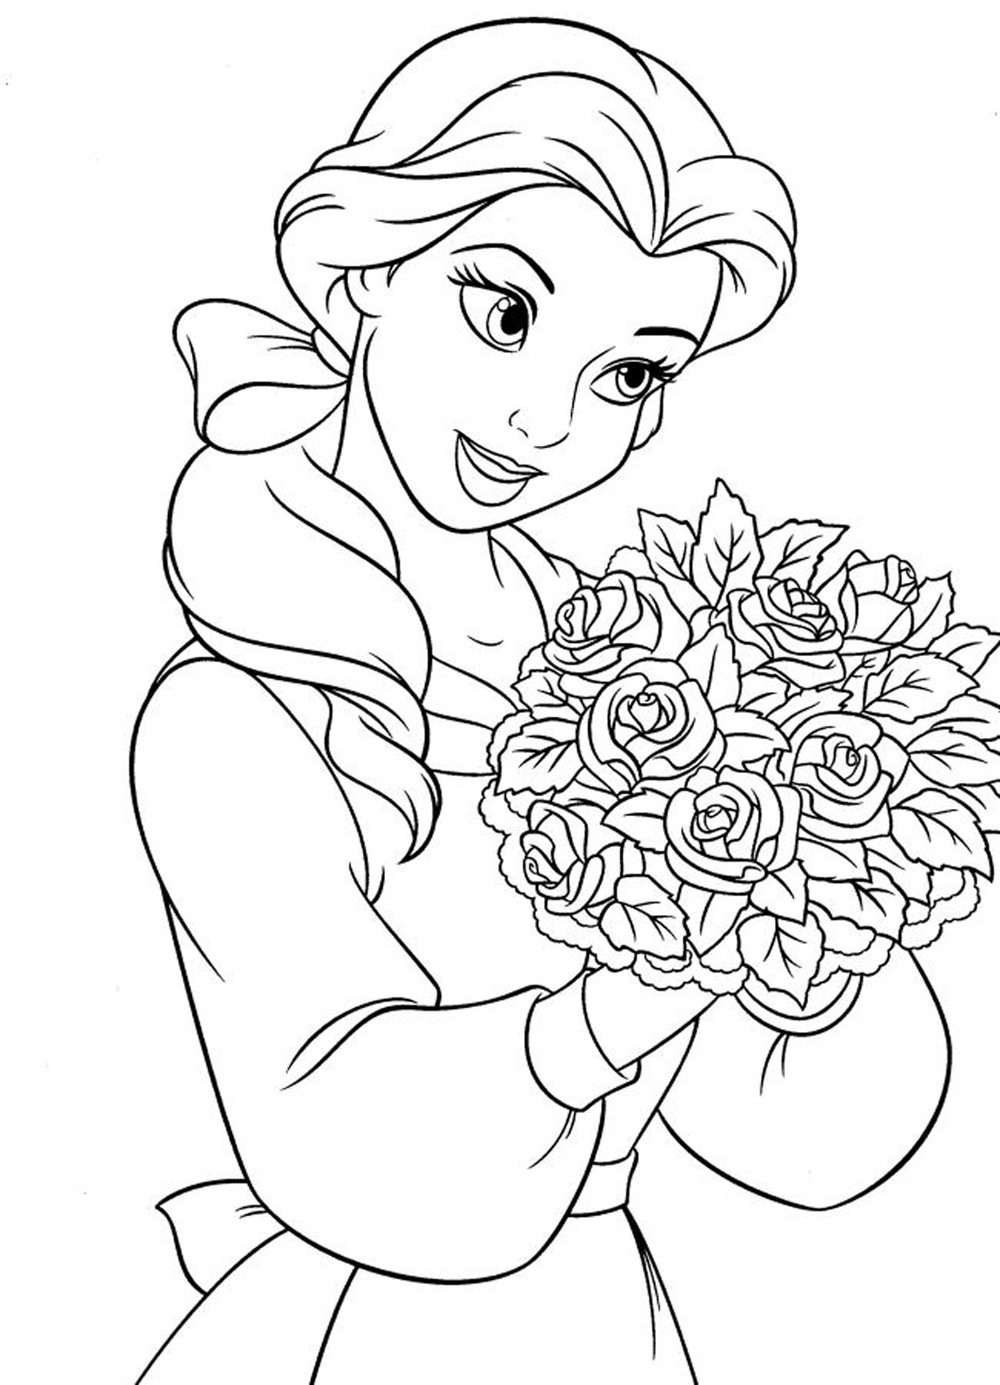 childrens disney coloring pages - photo#21